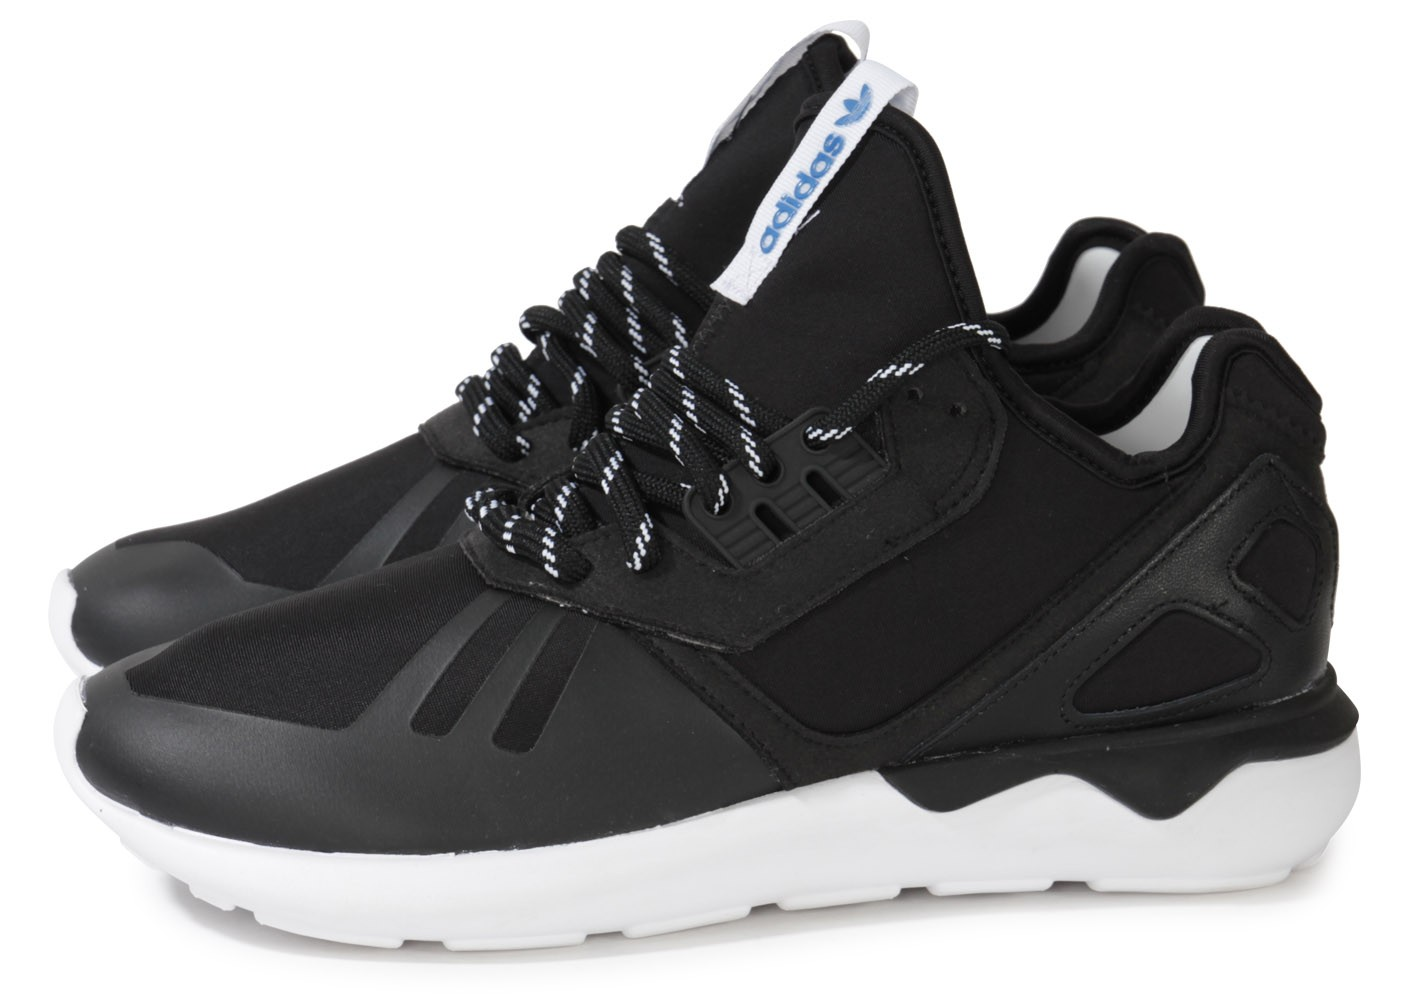 uk availability 3e015 399cf Nouveau Adidas Tubular Femme Grossiste Tea643